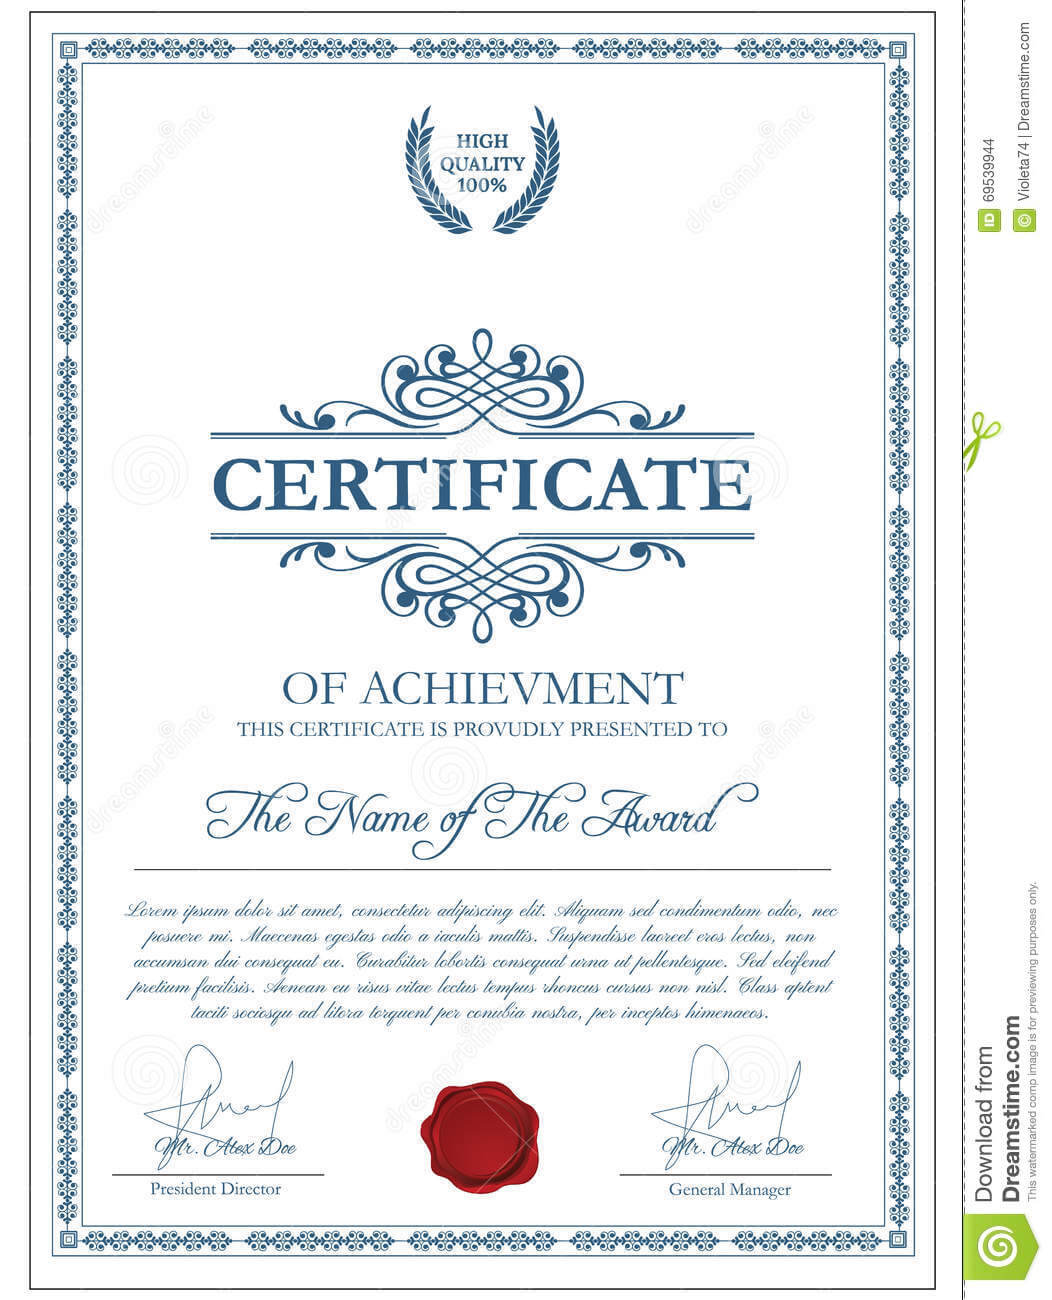 Certificate Template With Guilloche Elements. Stock Vector With Regard To Validation Certificate Template